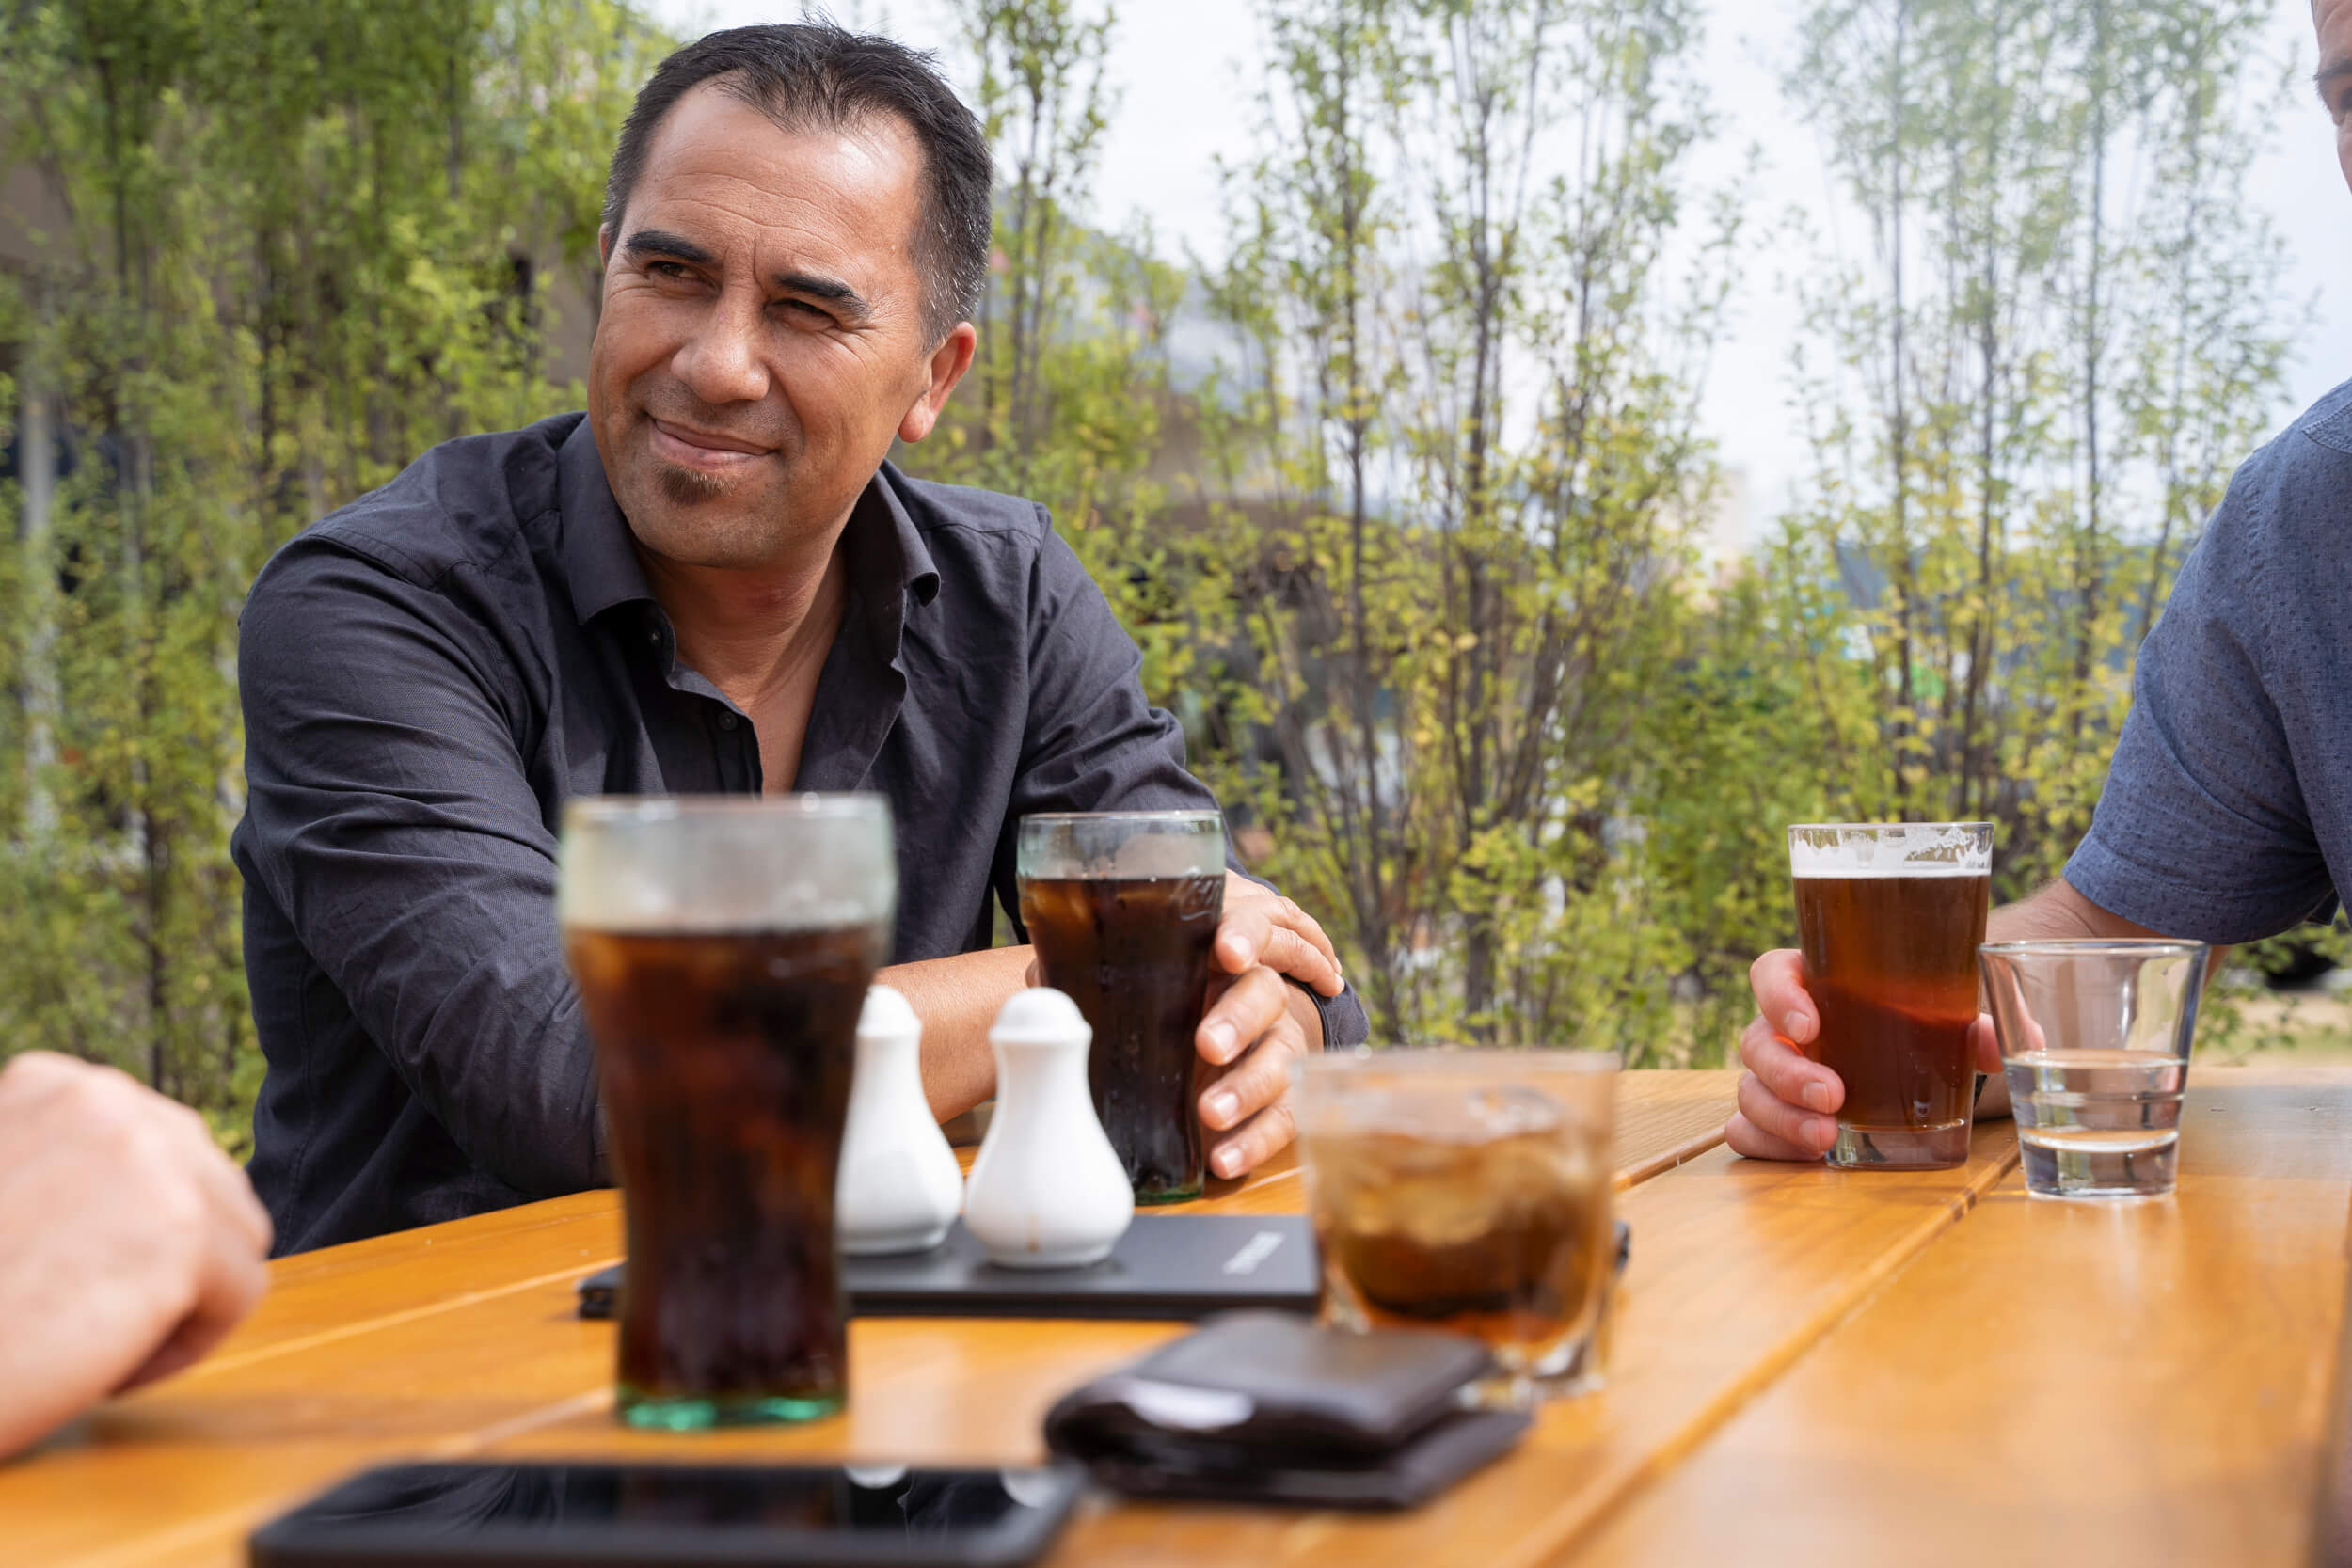 Man sitting at a wooden table listening and enjoying drinks with his companions.